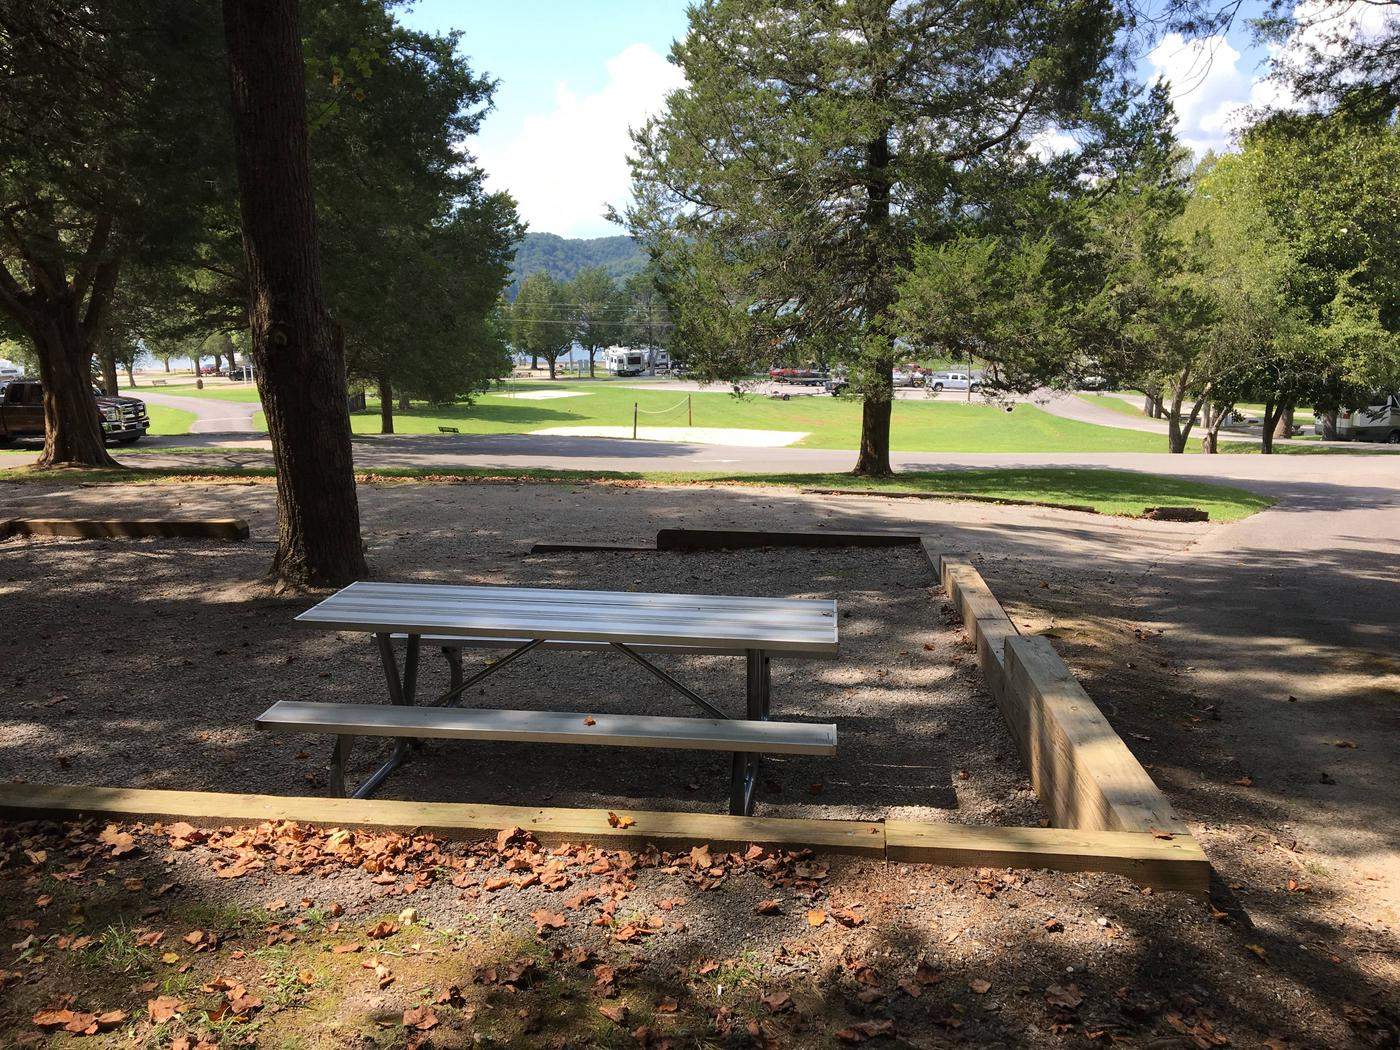 OBEY RIVER PARK SITE #128 TABLE AND LAKE VIEWOBEY RIVER PARK SITE #128